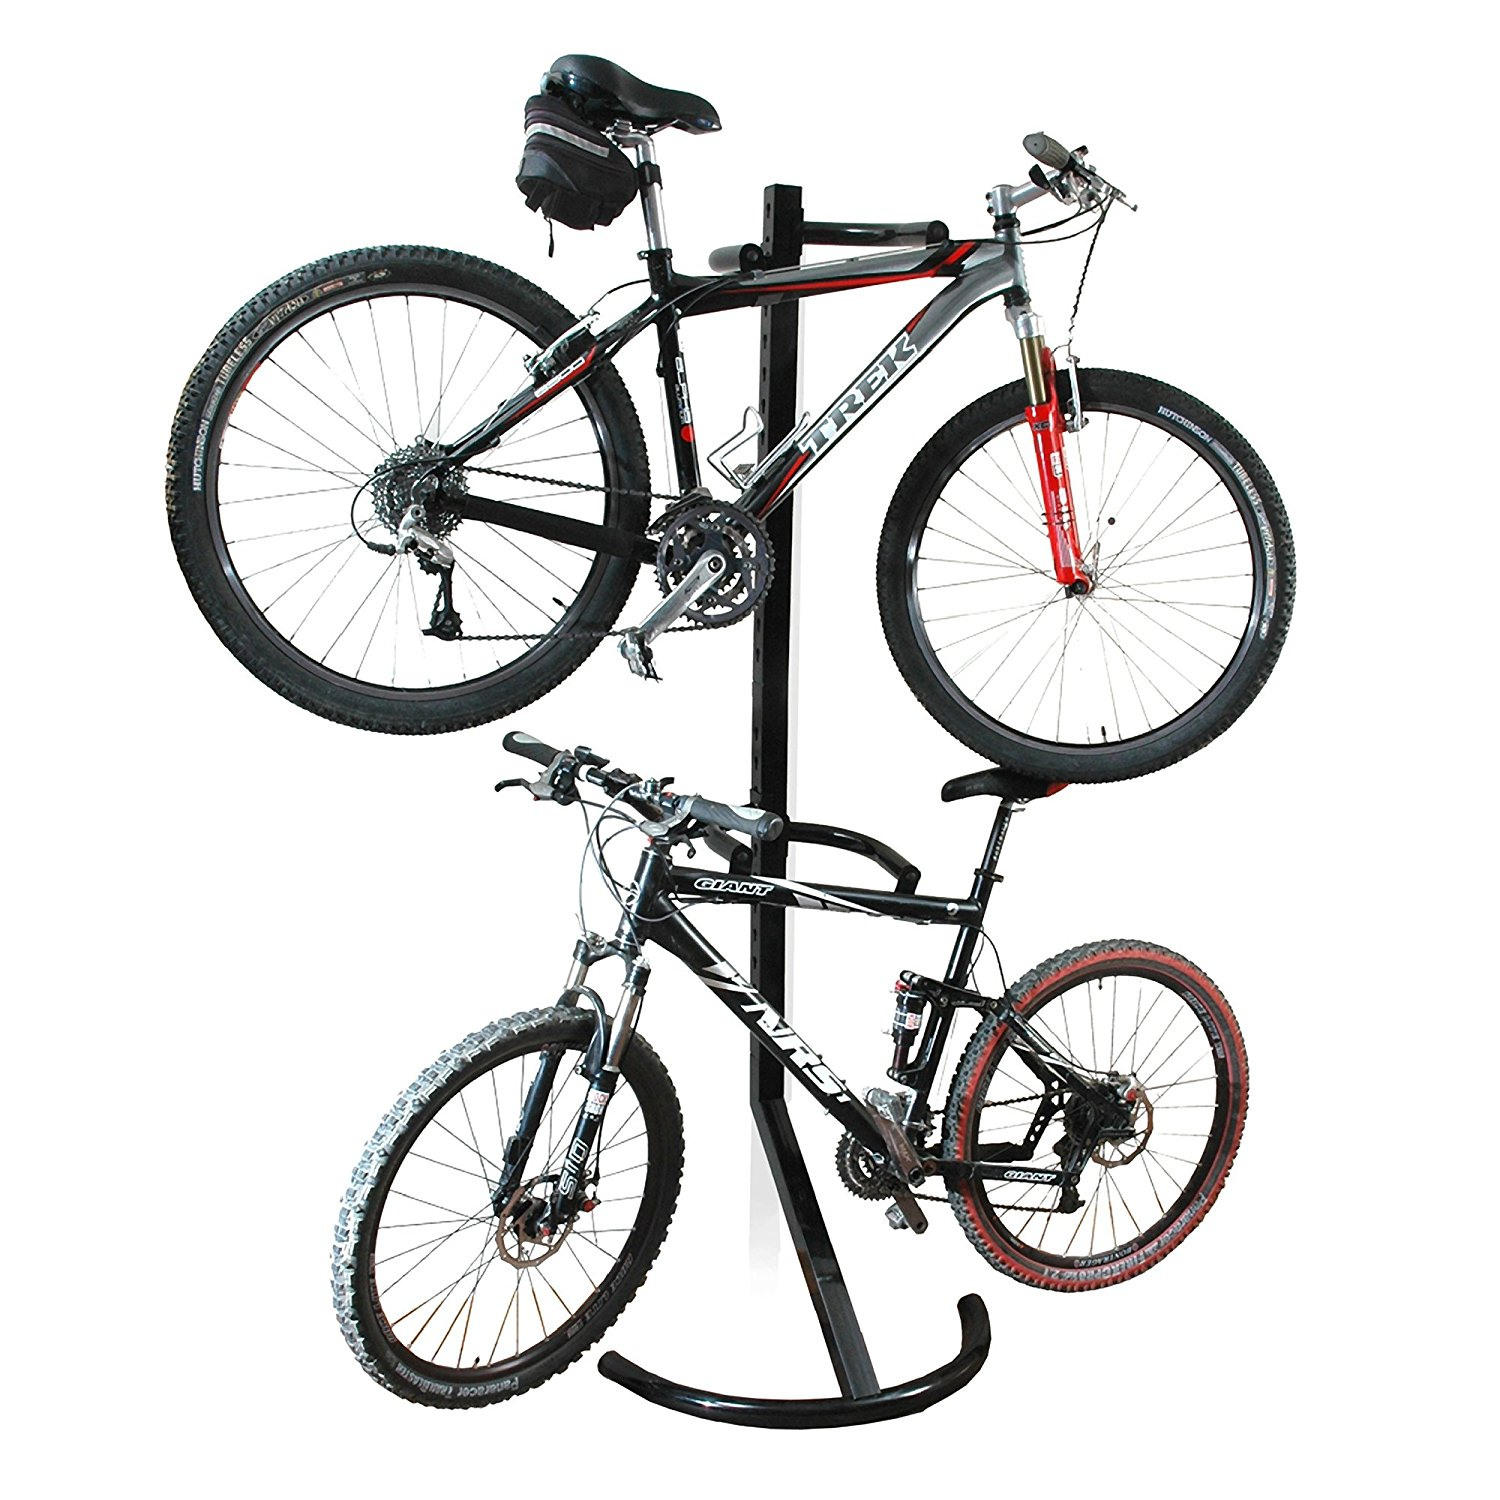 Amazon.com : RAD Cycle Products Gravity Bike Stand/Bicycle Rack for ...